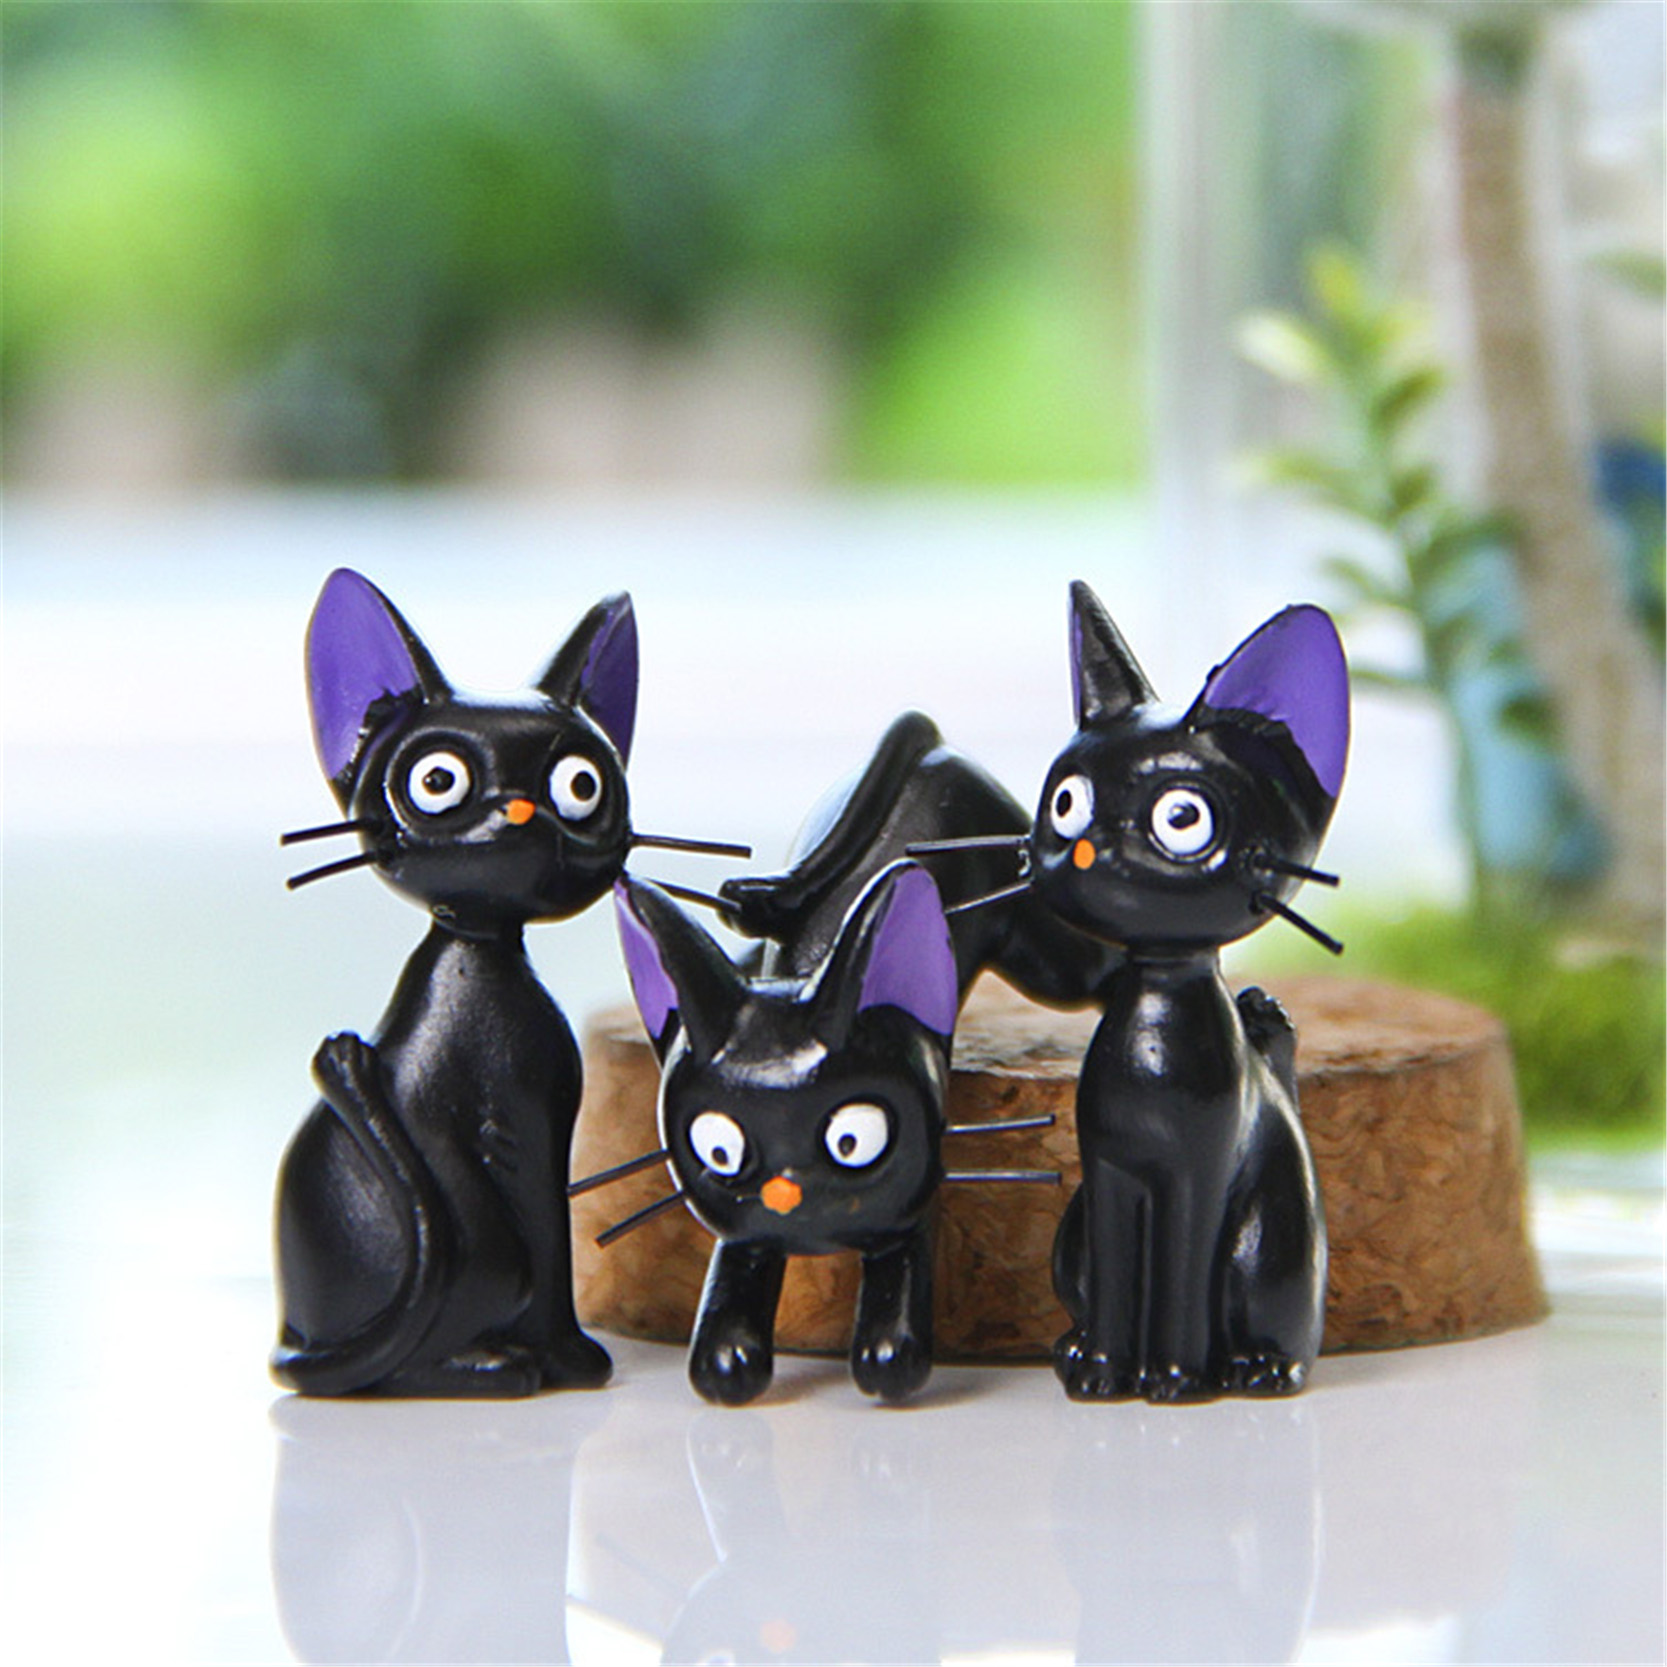 2016 Kawaii Miniature Toy Cats Black Resin Crafts Fairy Garden Decorations Figurines For Home Decor Micro Landscape(China (Mainland))